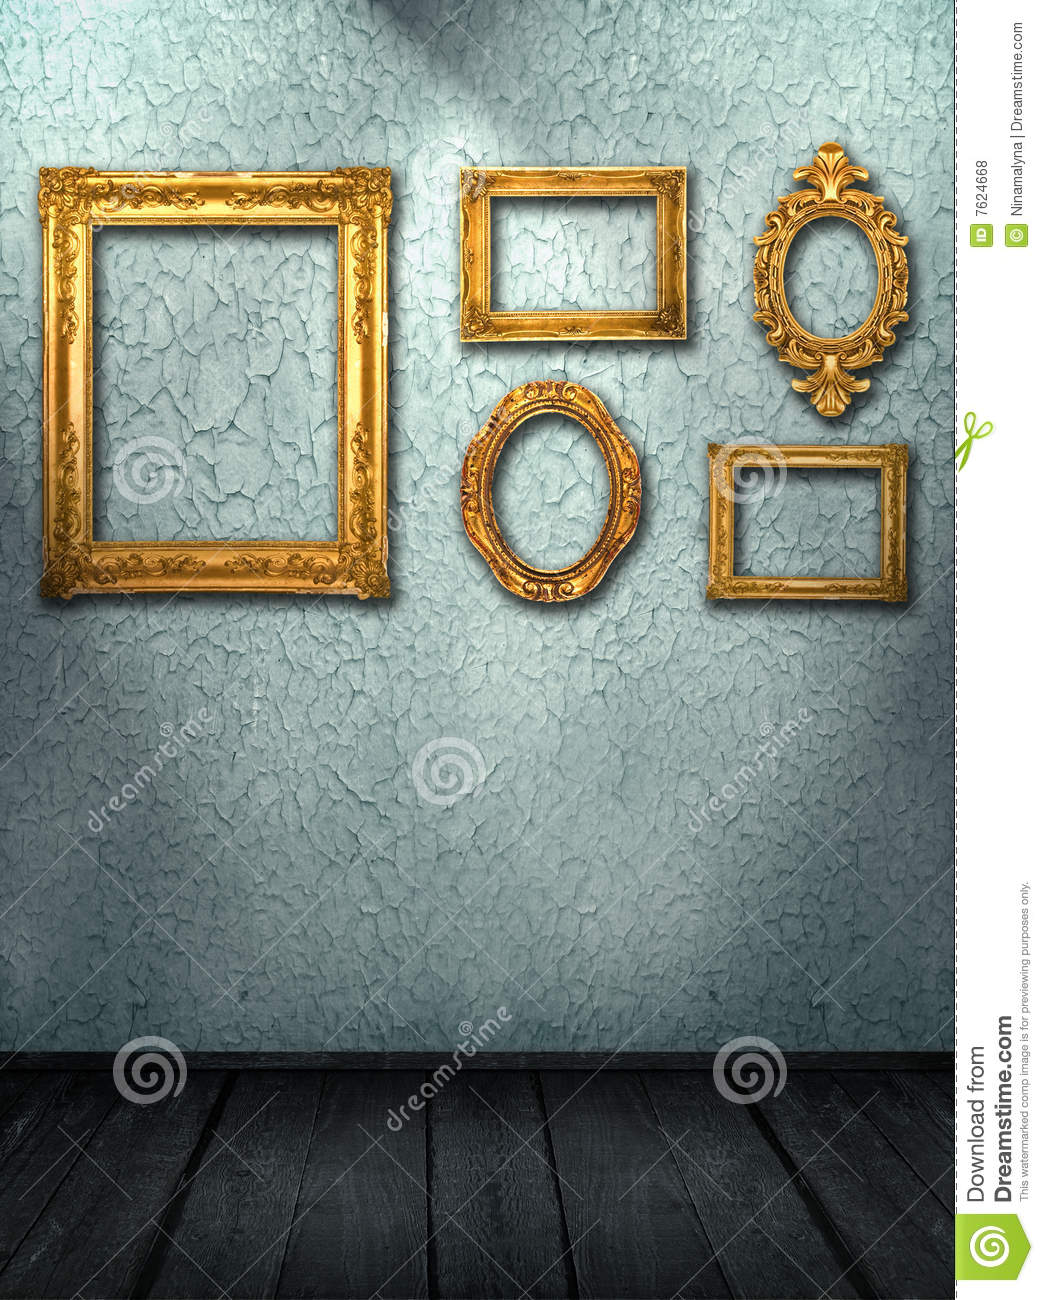 Interior Do Quarto Do Vintage Fotos de Stock Royalty Free - Imagem ...